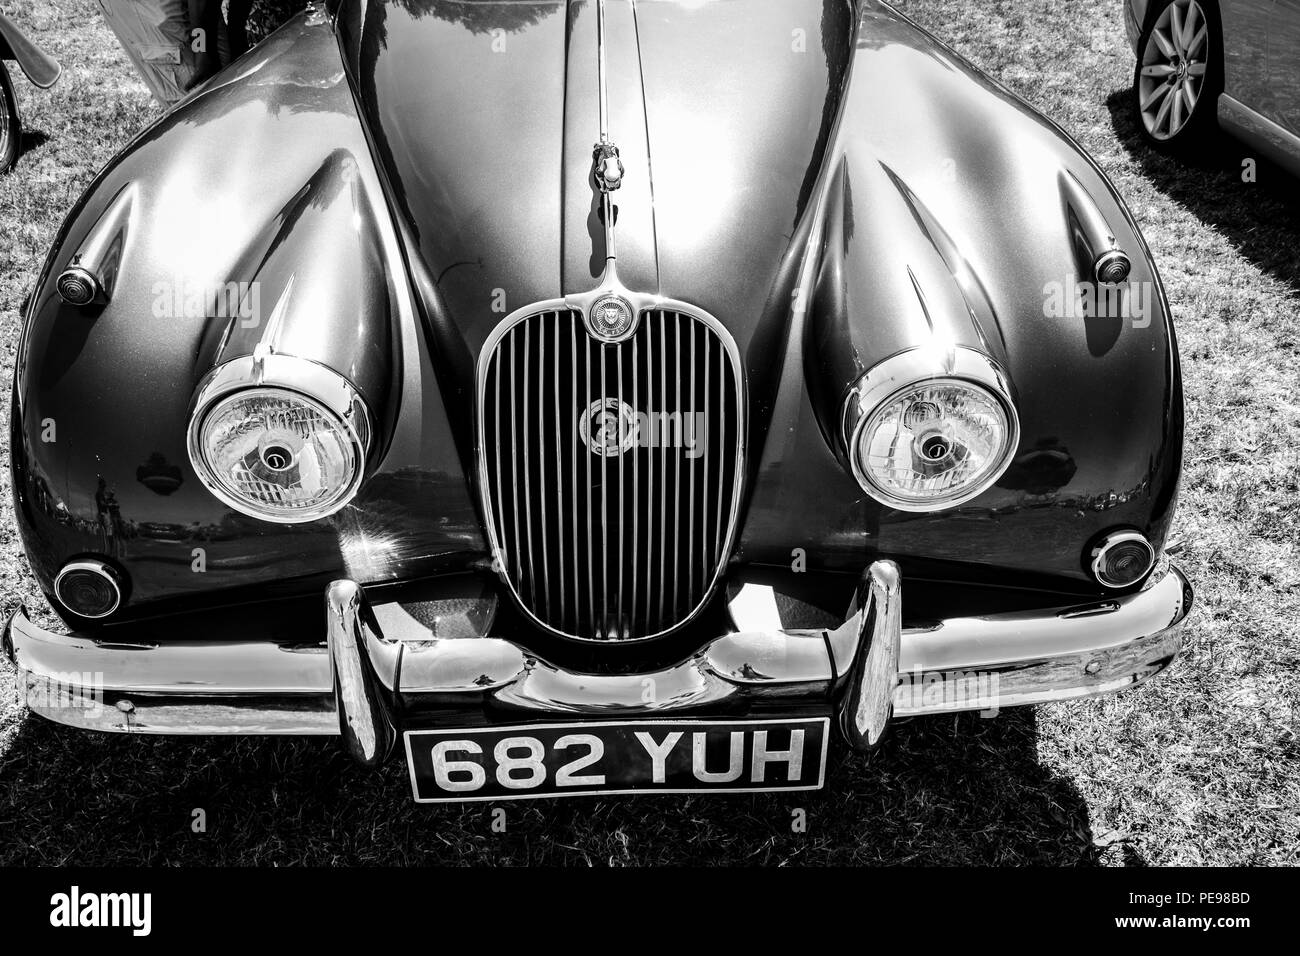 classic car show porthcawl august 2012 - Stock Image